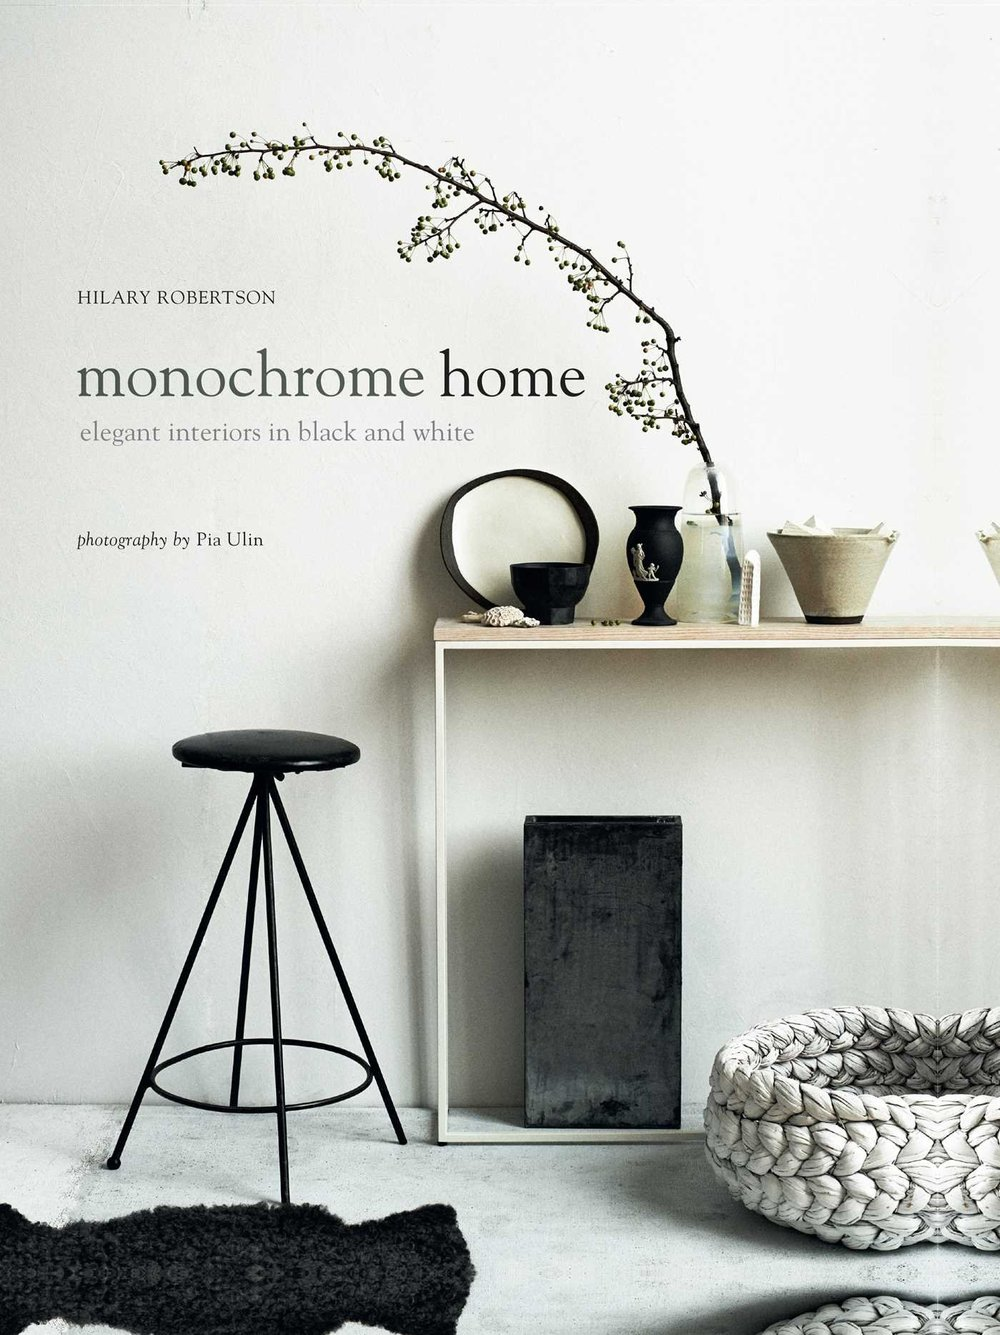 Monochrome Home design book